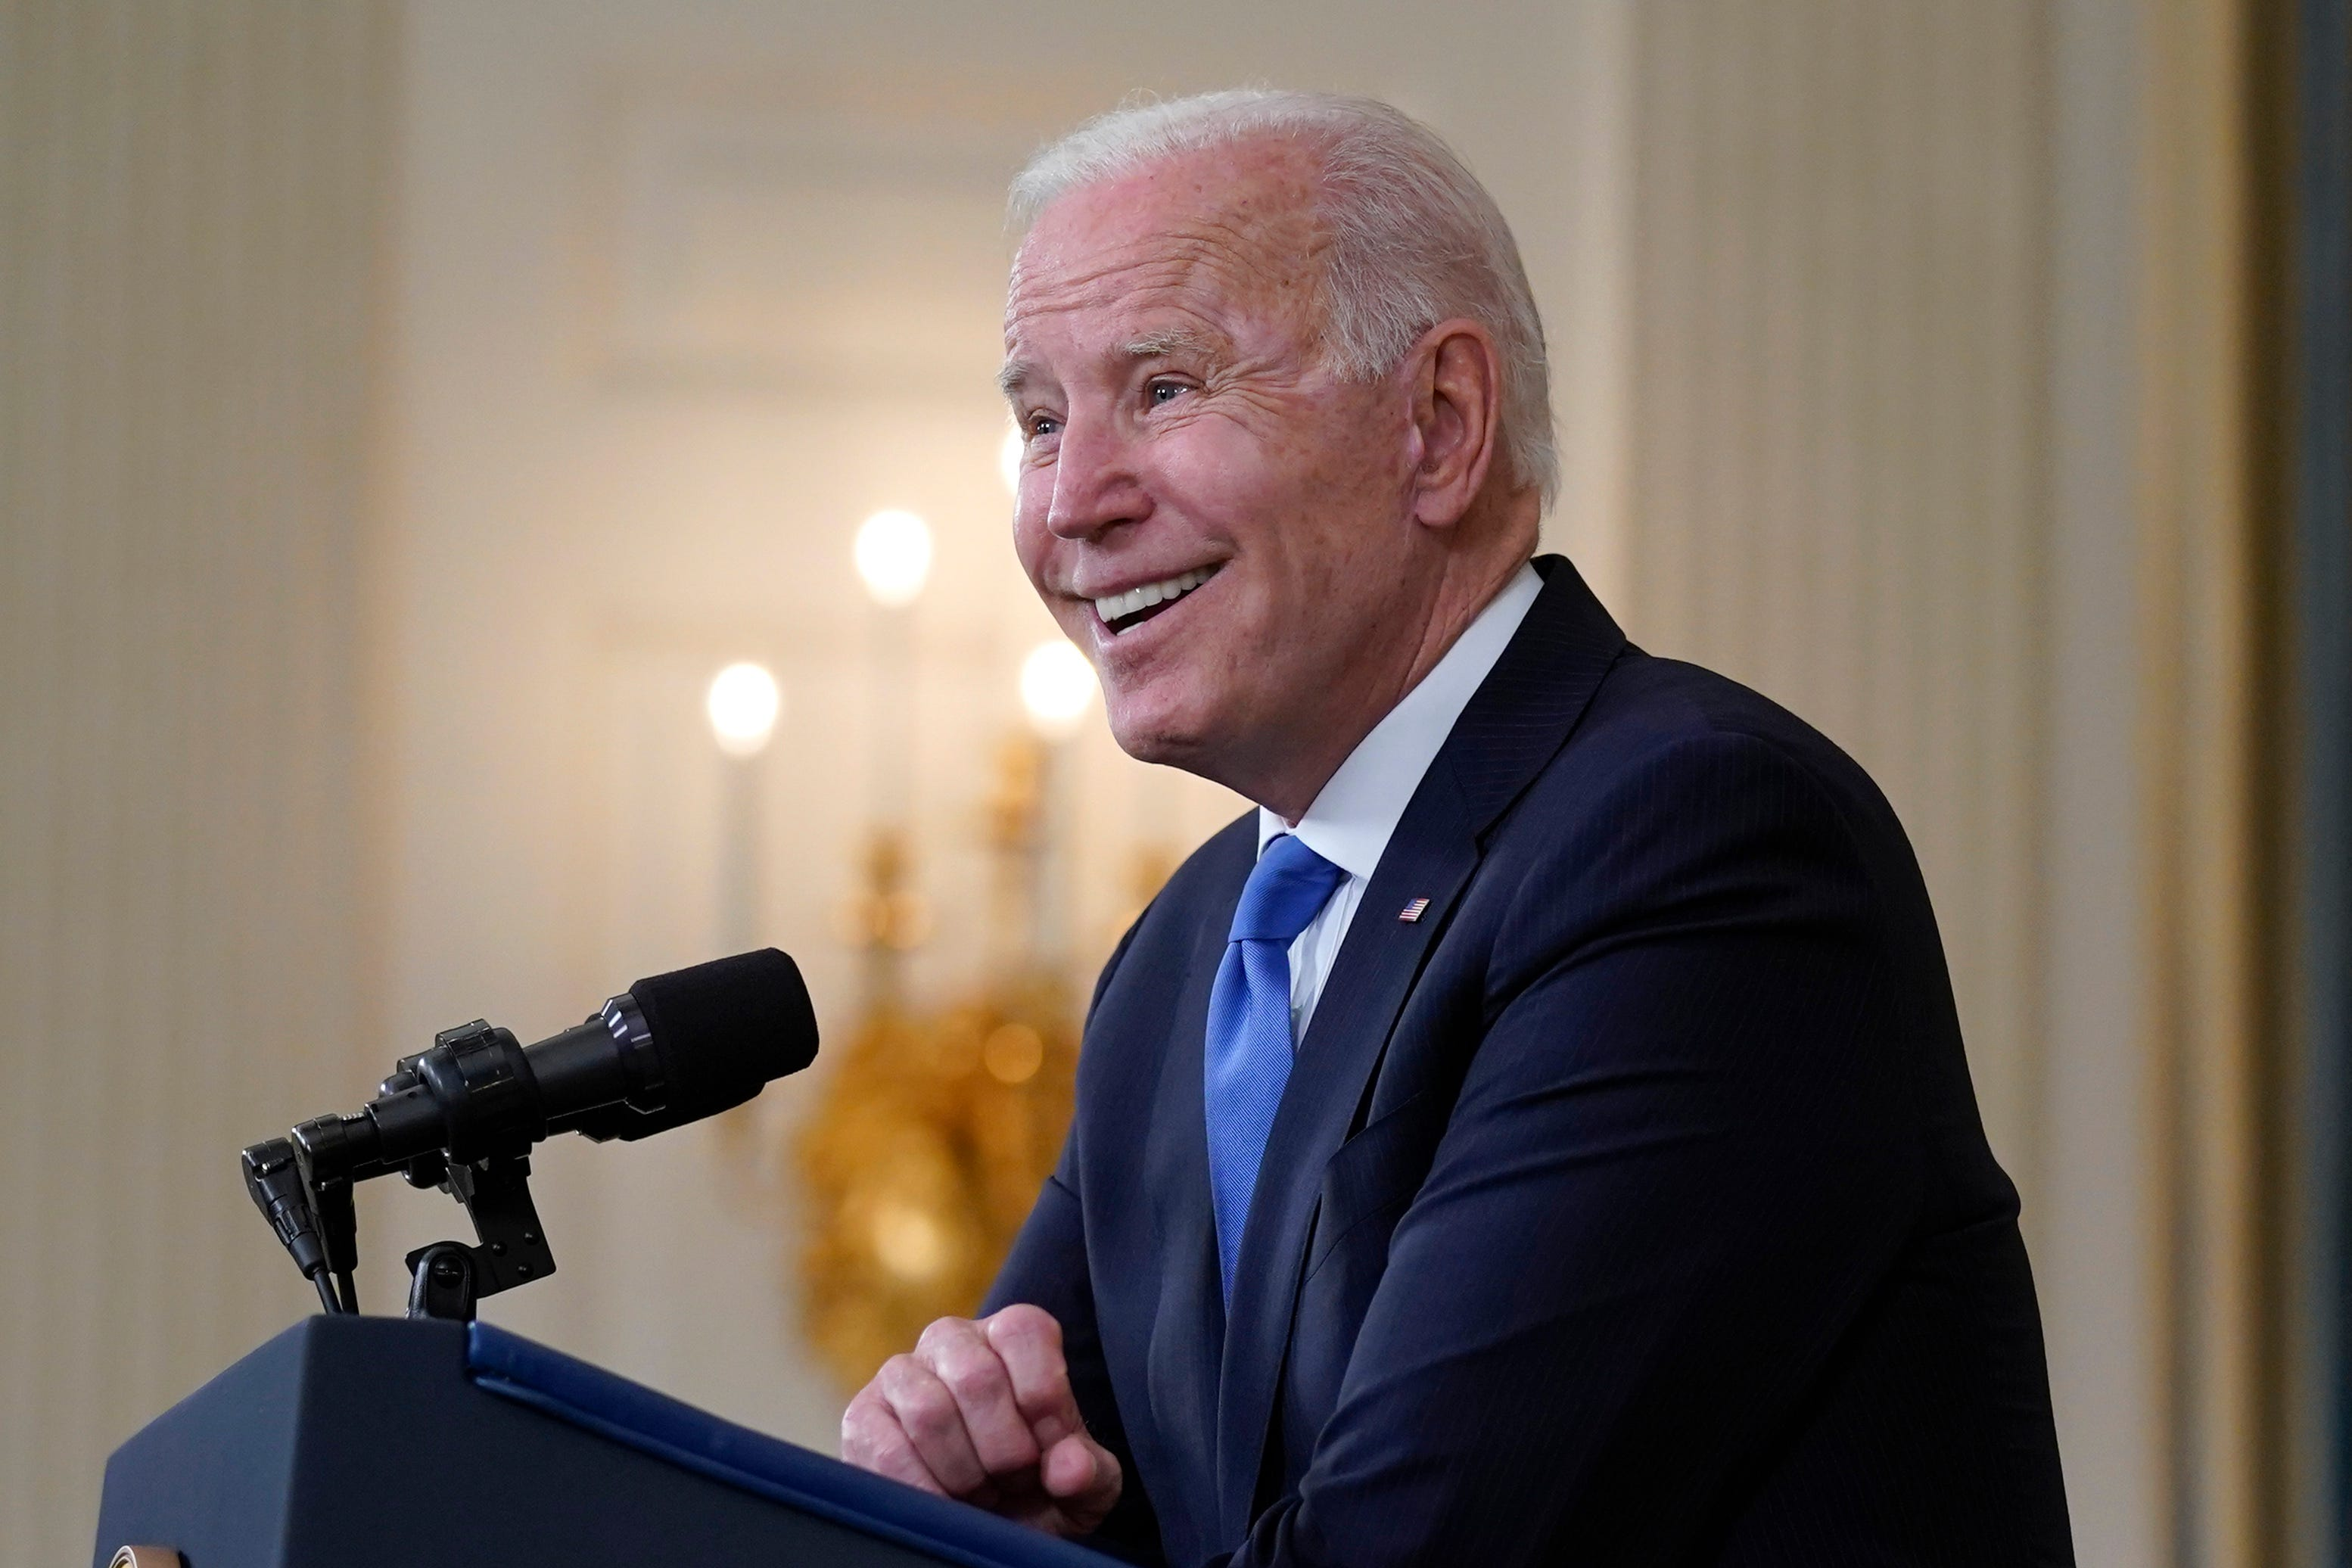 TOP# President Biden earned $607,000 in 2020, paid 26% in federal taxes, returns show